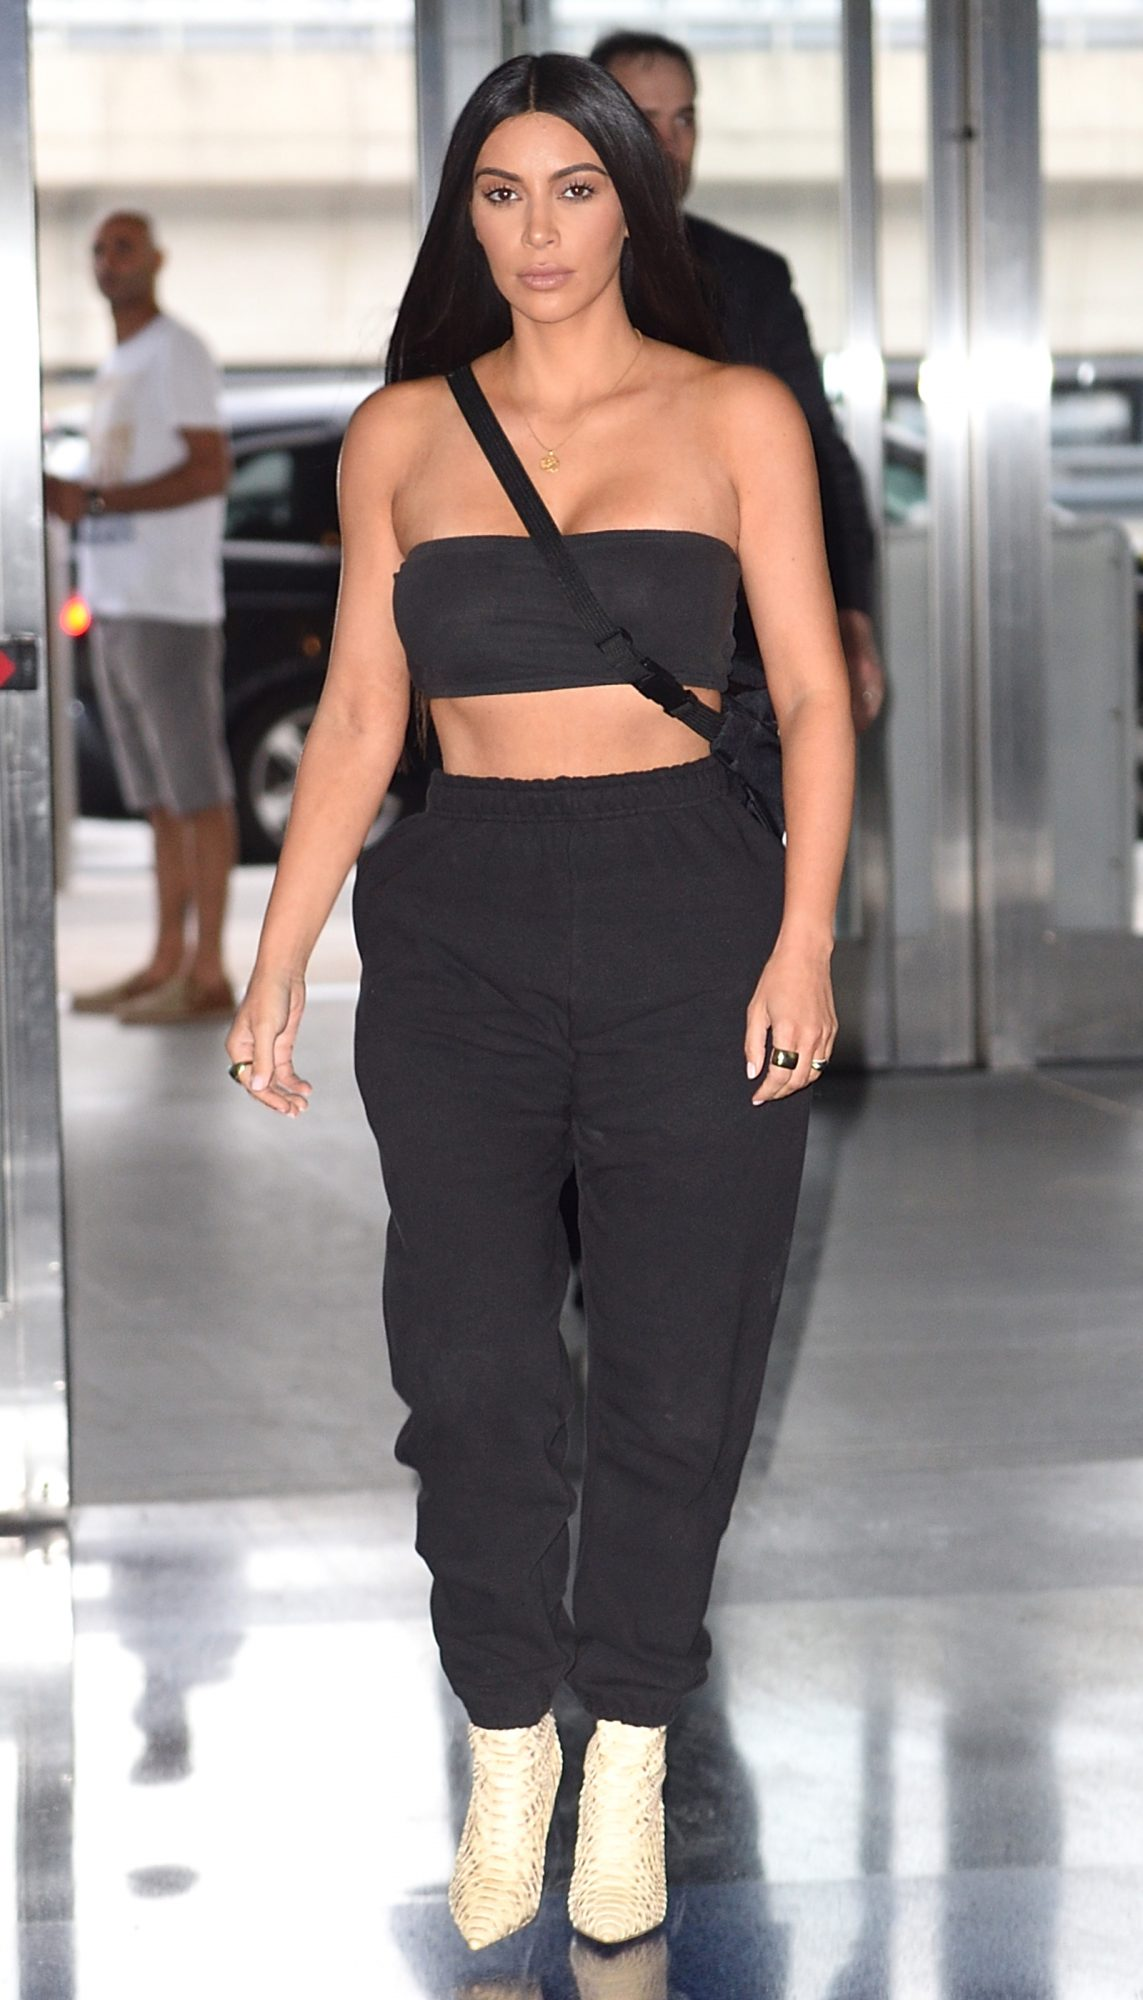 Kim Kardashian catches a flight at JFK airport in NYC.